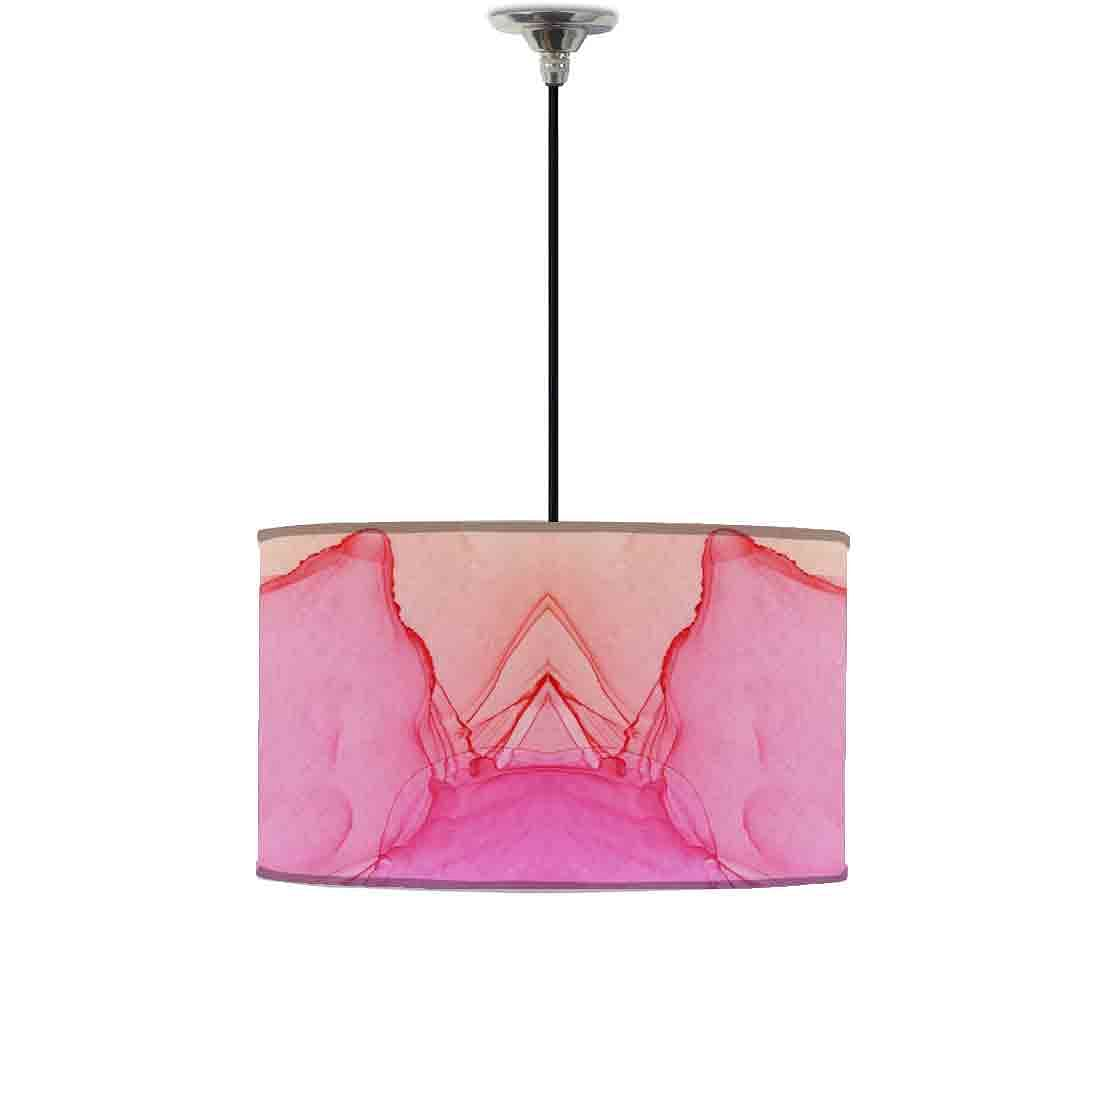 Ceiling Lamp Hanging Drum Lampshade - Pink Purple Yellow Ink Watercolor